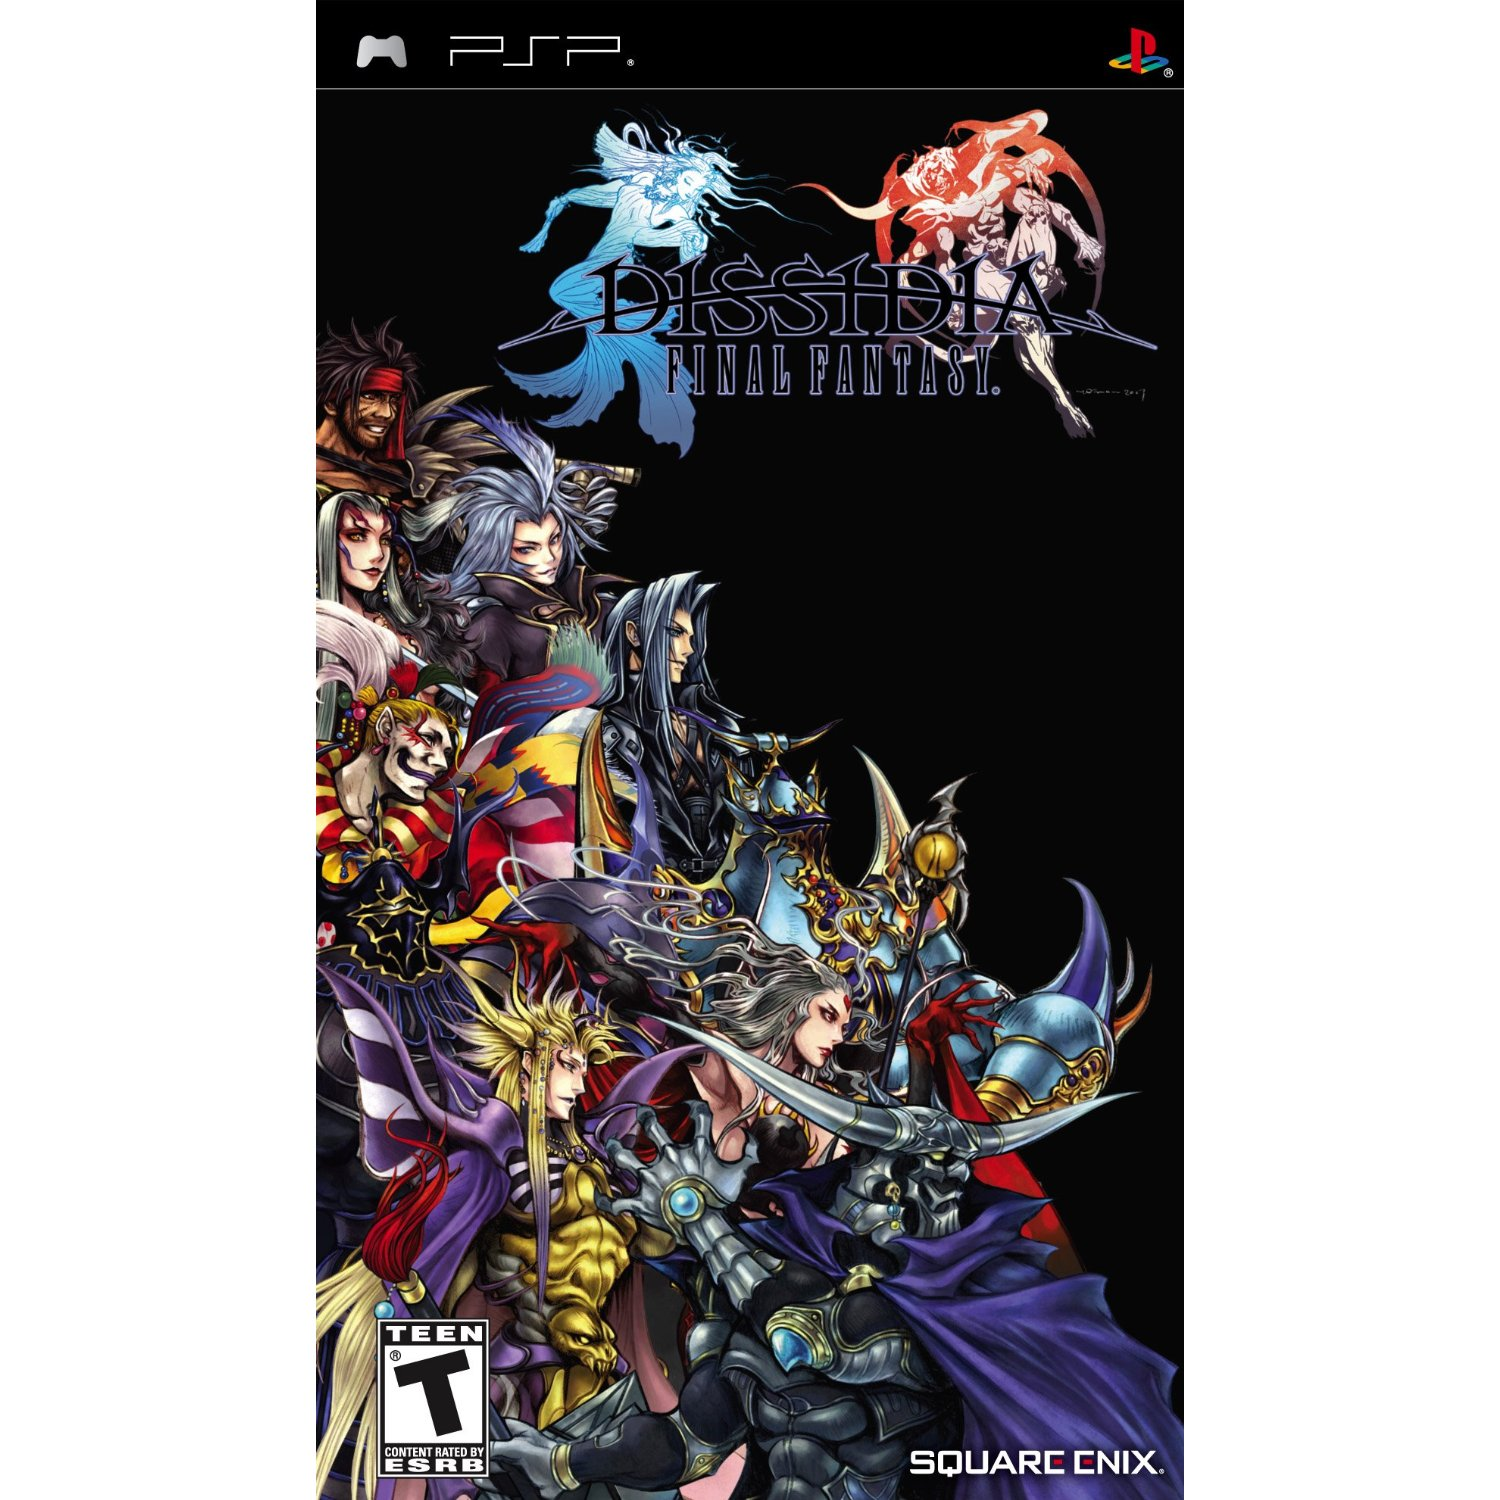 PSP: DISSIDIA FINAL FANTASY (COMPLETE)